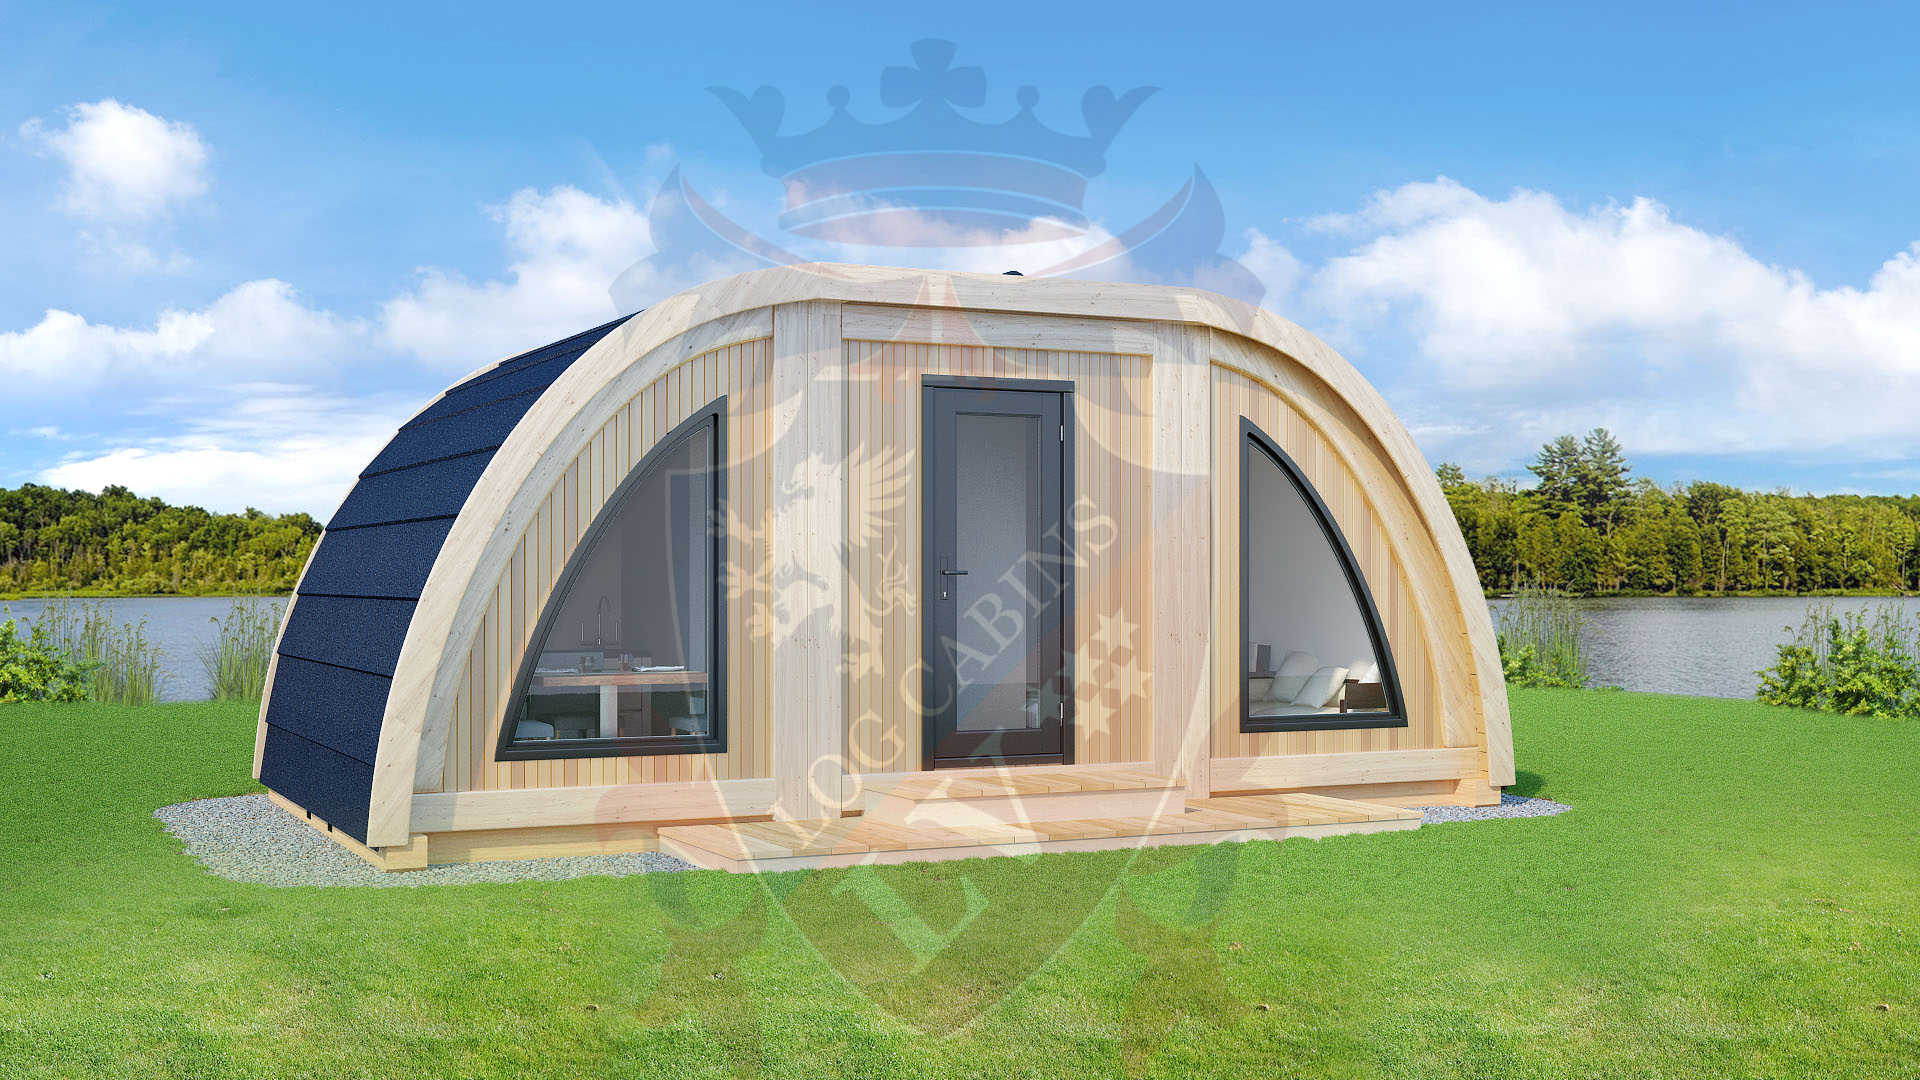 Timber frame highly insulated camping Pods 1